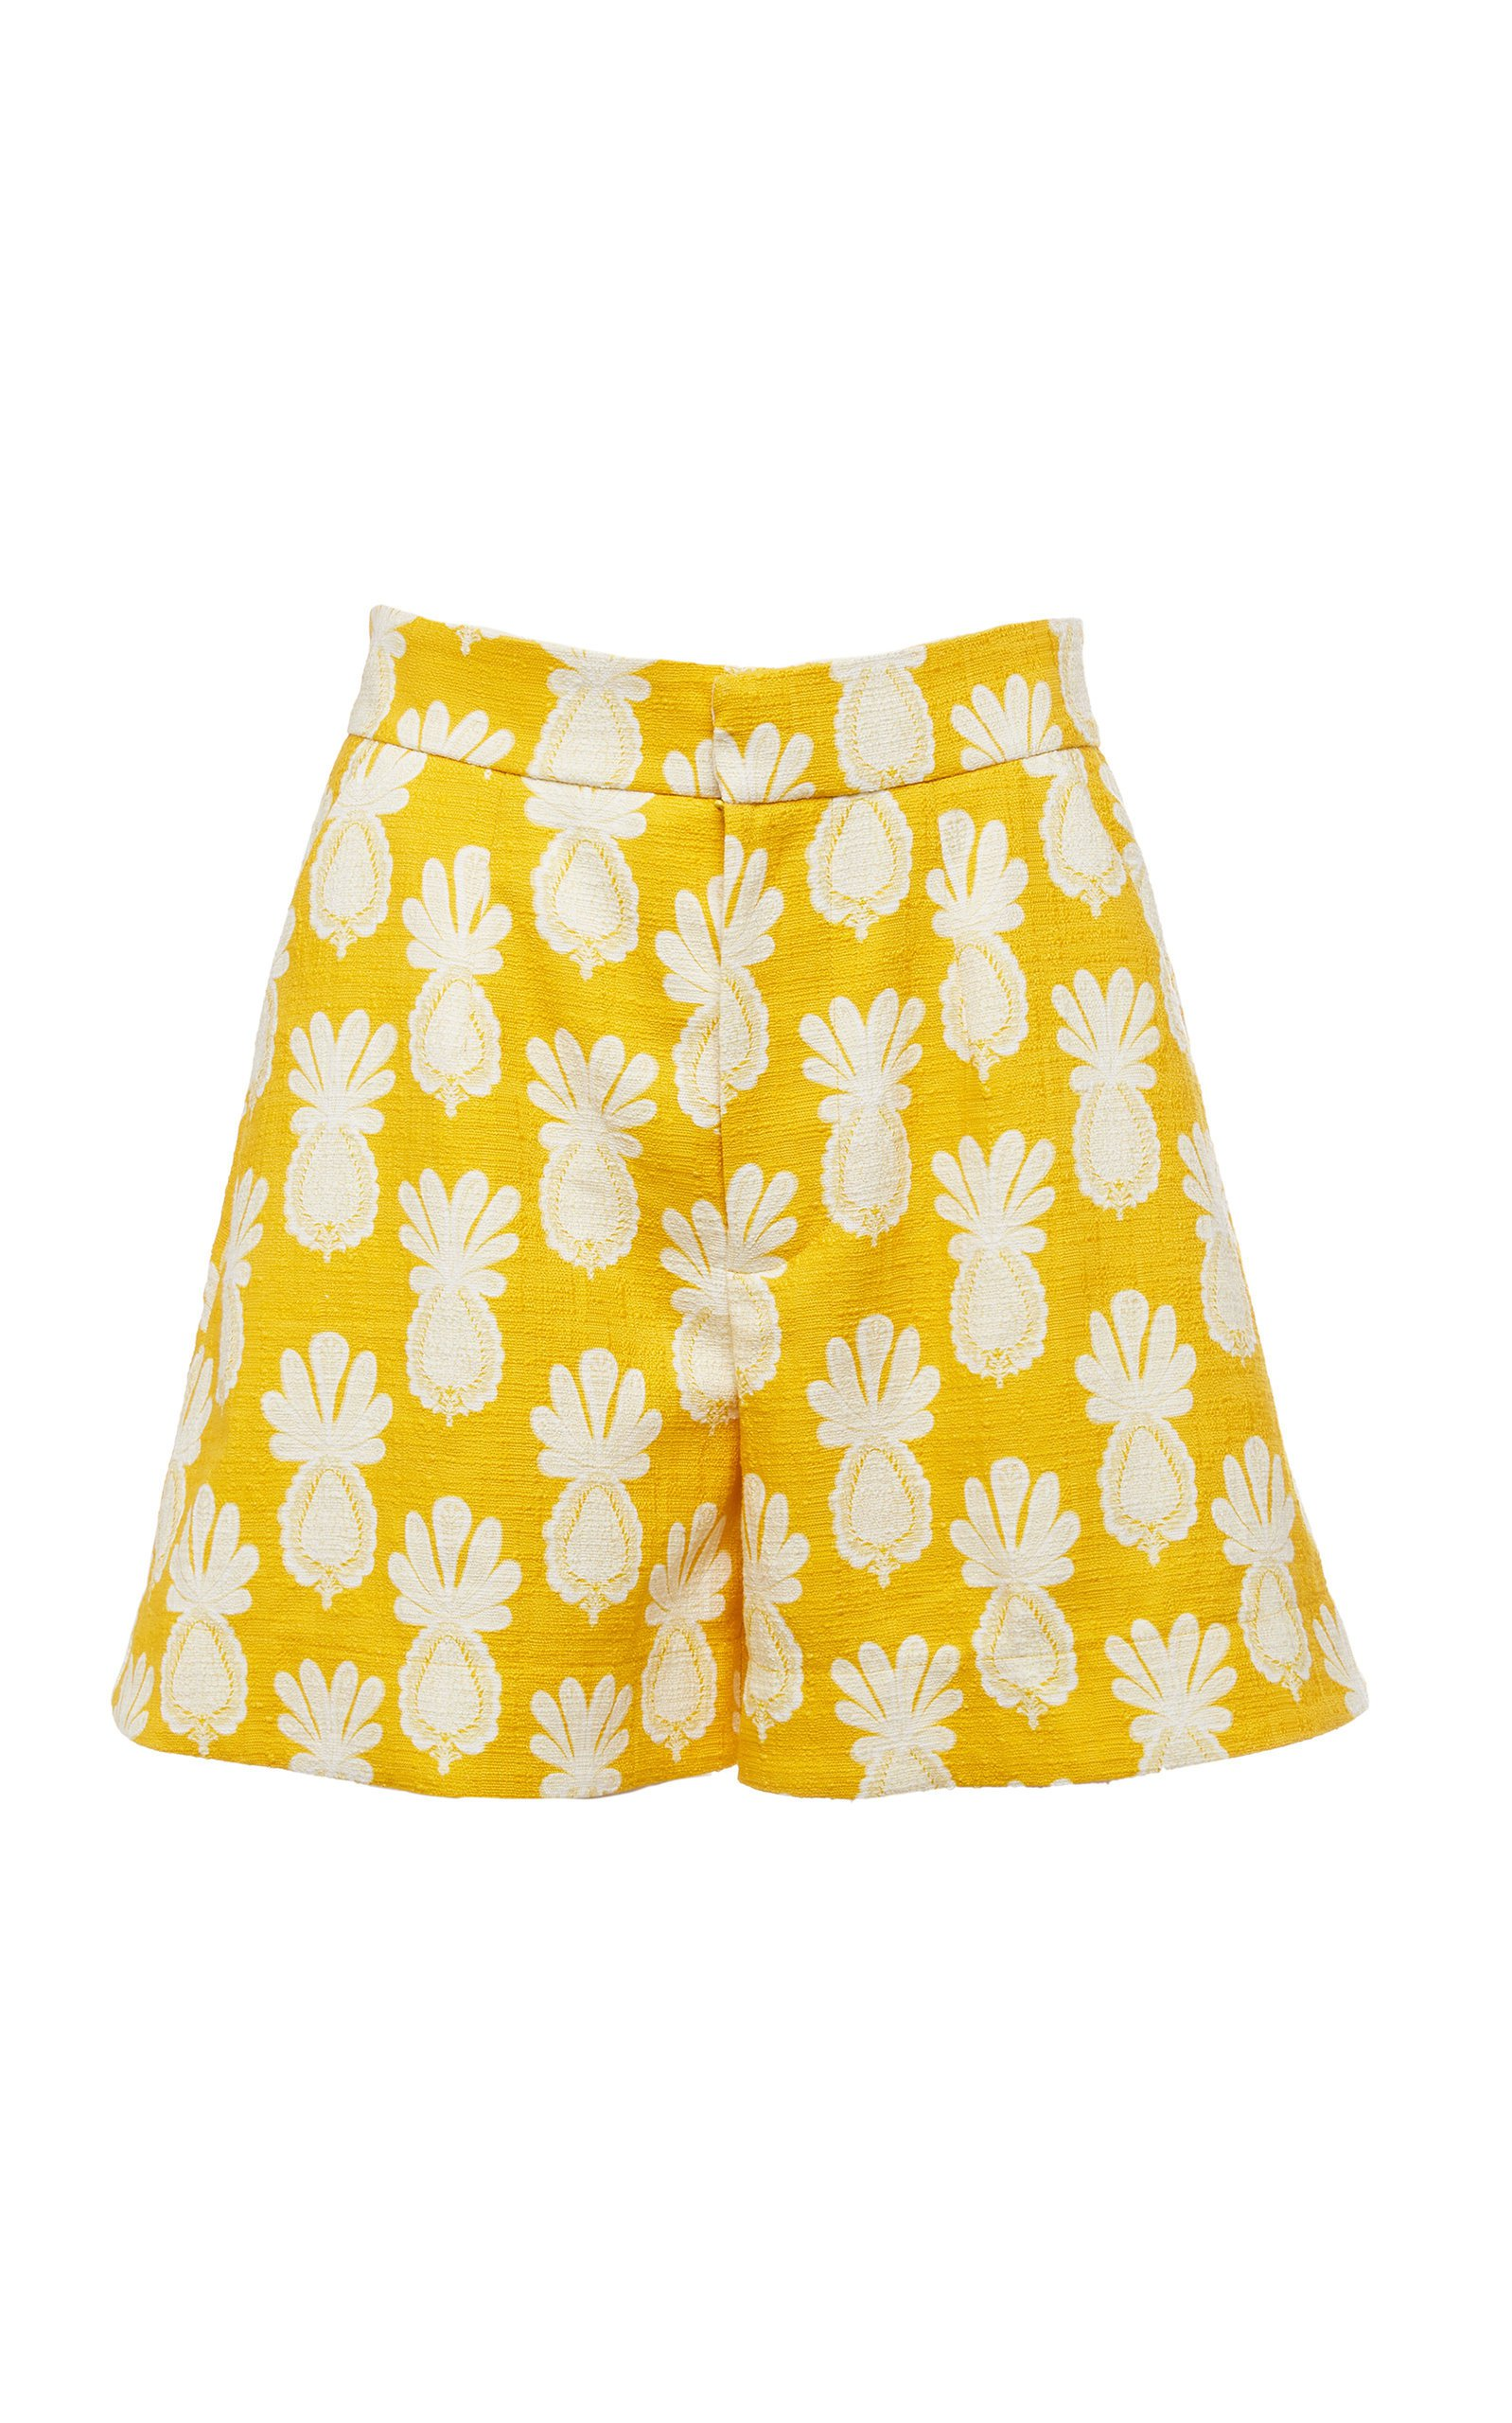 La DoubleJ Good Butt High-Rise Printed Shorts Size: S